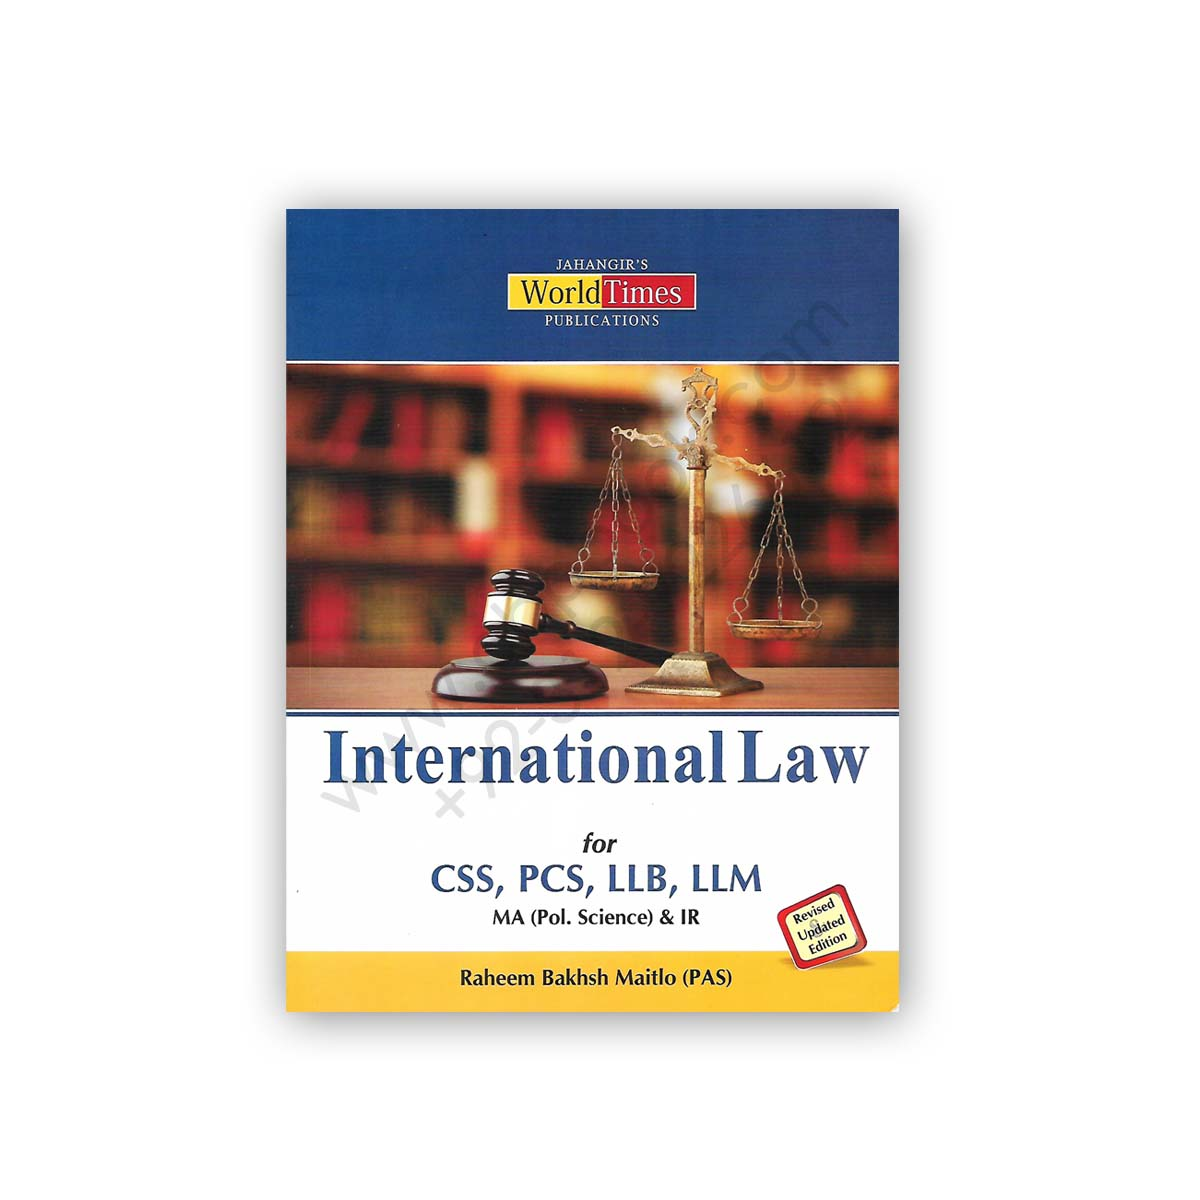 jwt international law for css pcs llb llm by raheem baksh maitlo